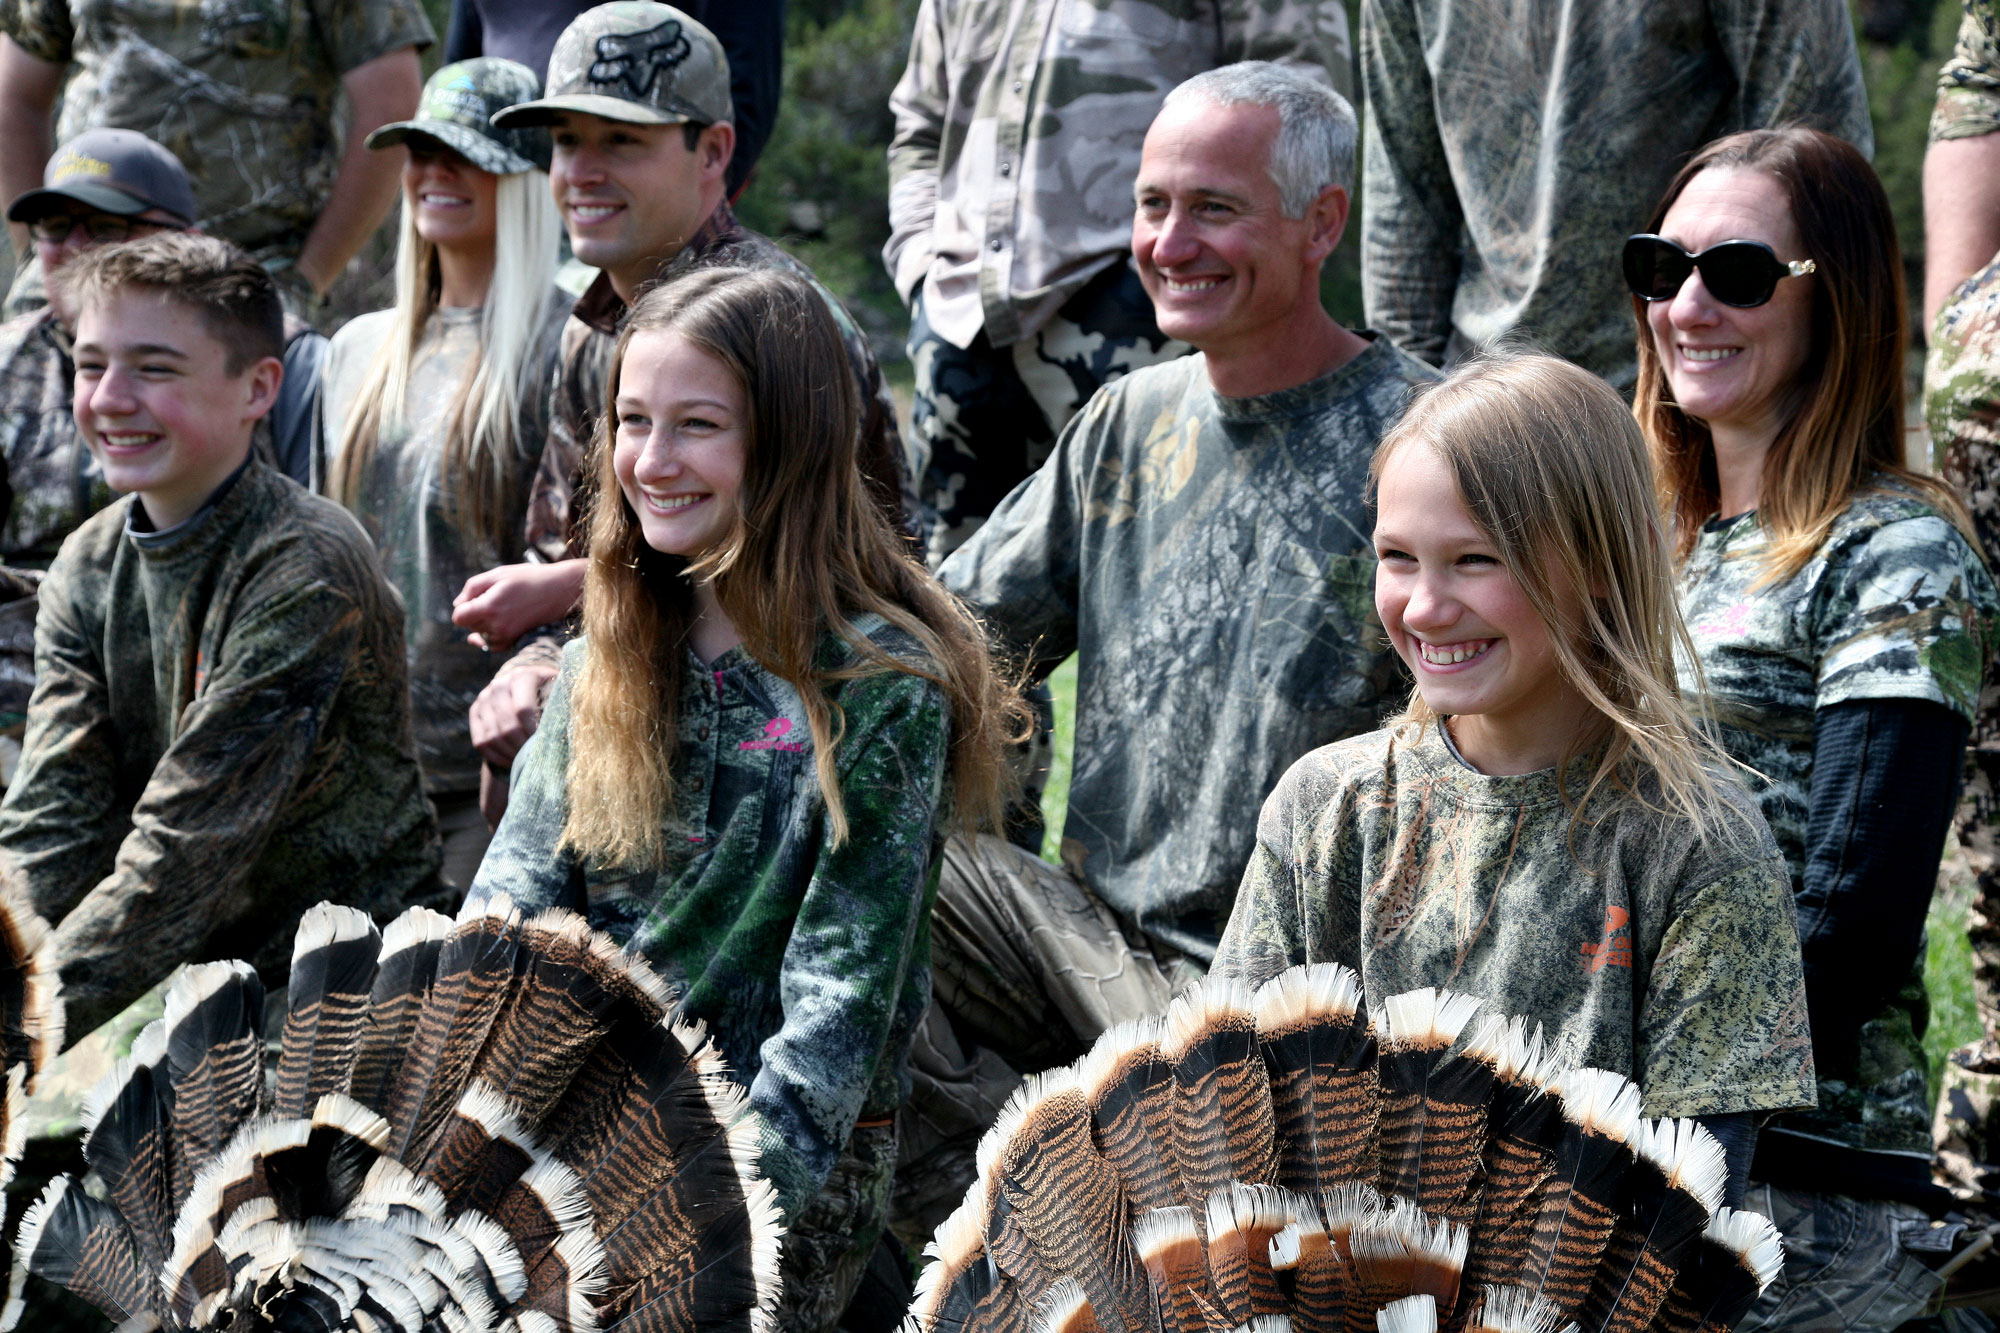 This year was a bountiful one for the annual Colorado Parks and Wildlife Youth Hunter Outreach Program turkey hunt, with six out of seven youngsters taking a turkey. From left, Hunter Snow, 14, and sisters Savannah and Hailey Jones, ages 13 and 11. Behind, from left, are parents Amber and Andy Snow, and John and Jenny Jones.